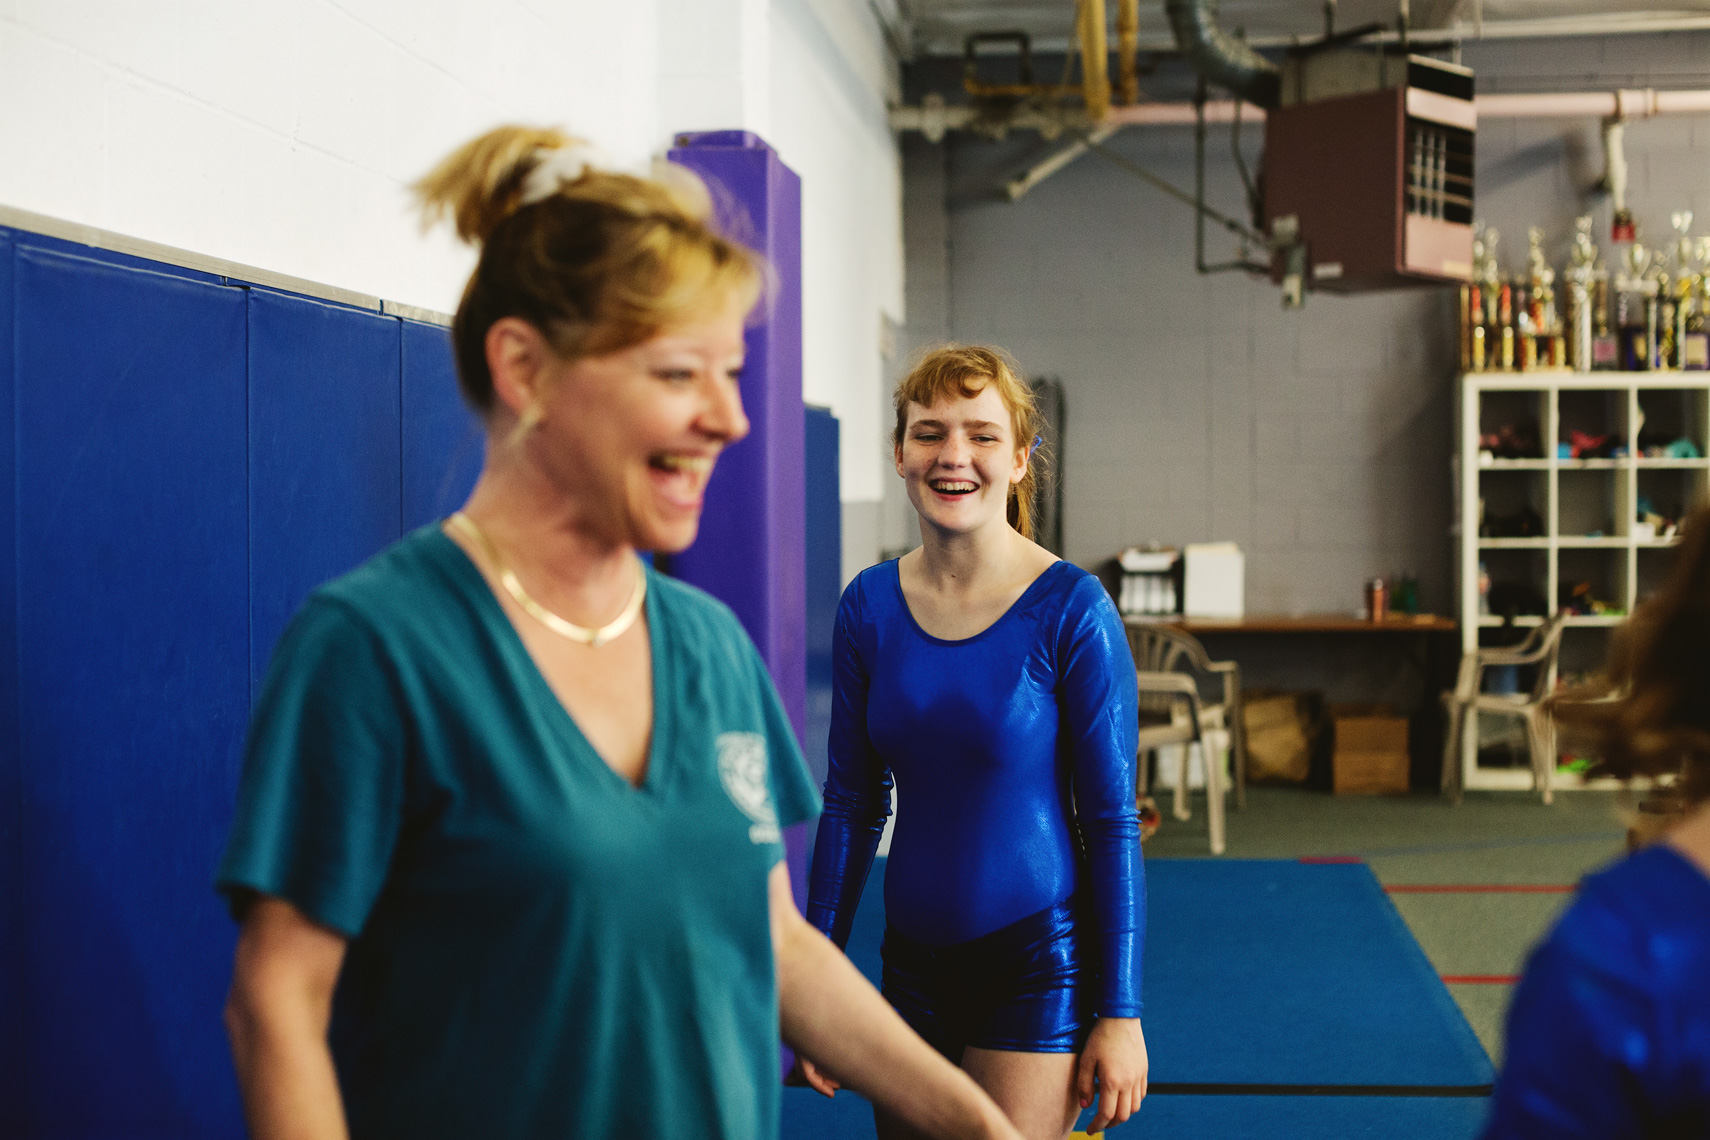 young female special olympics gymnast in blue laughing with trainer, washington dc commercial photography